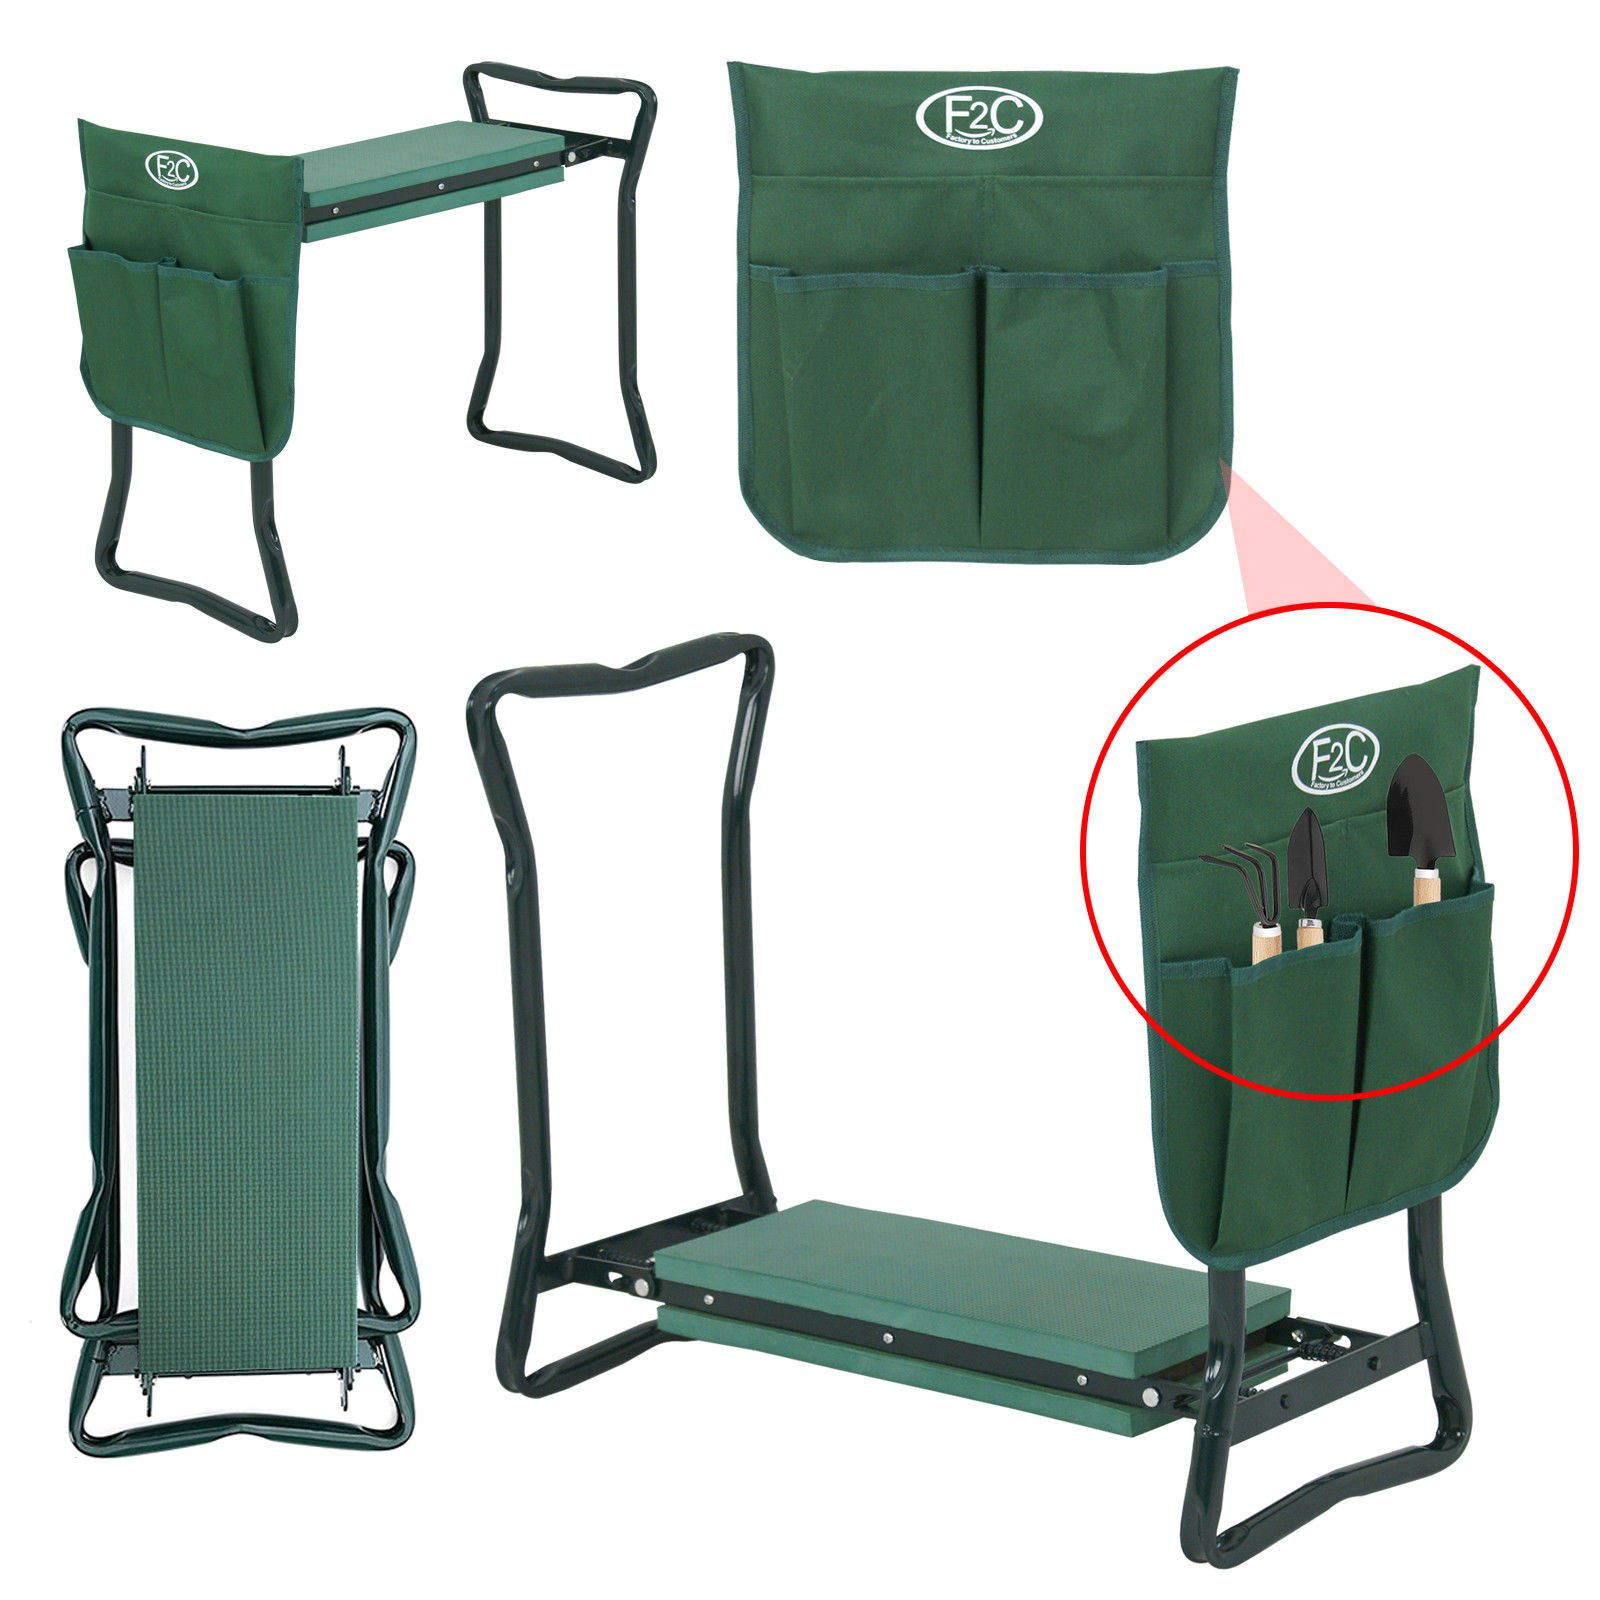 Has_Shop Garden Bench Foldable Kneeler Stool Soft Cushion Seat Pad Kneeling w Tool Pouch by Has_Shop (Image #6)